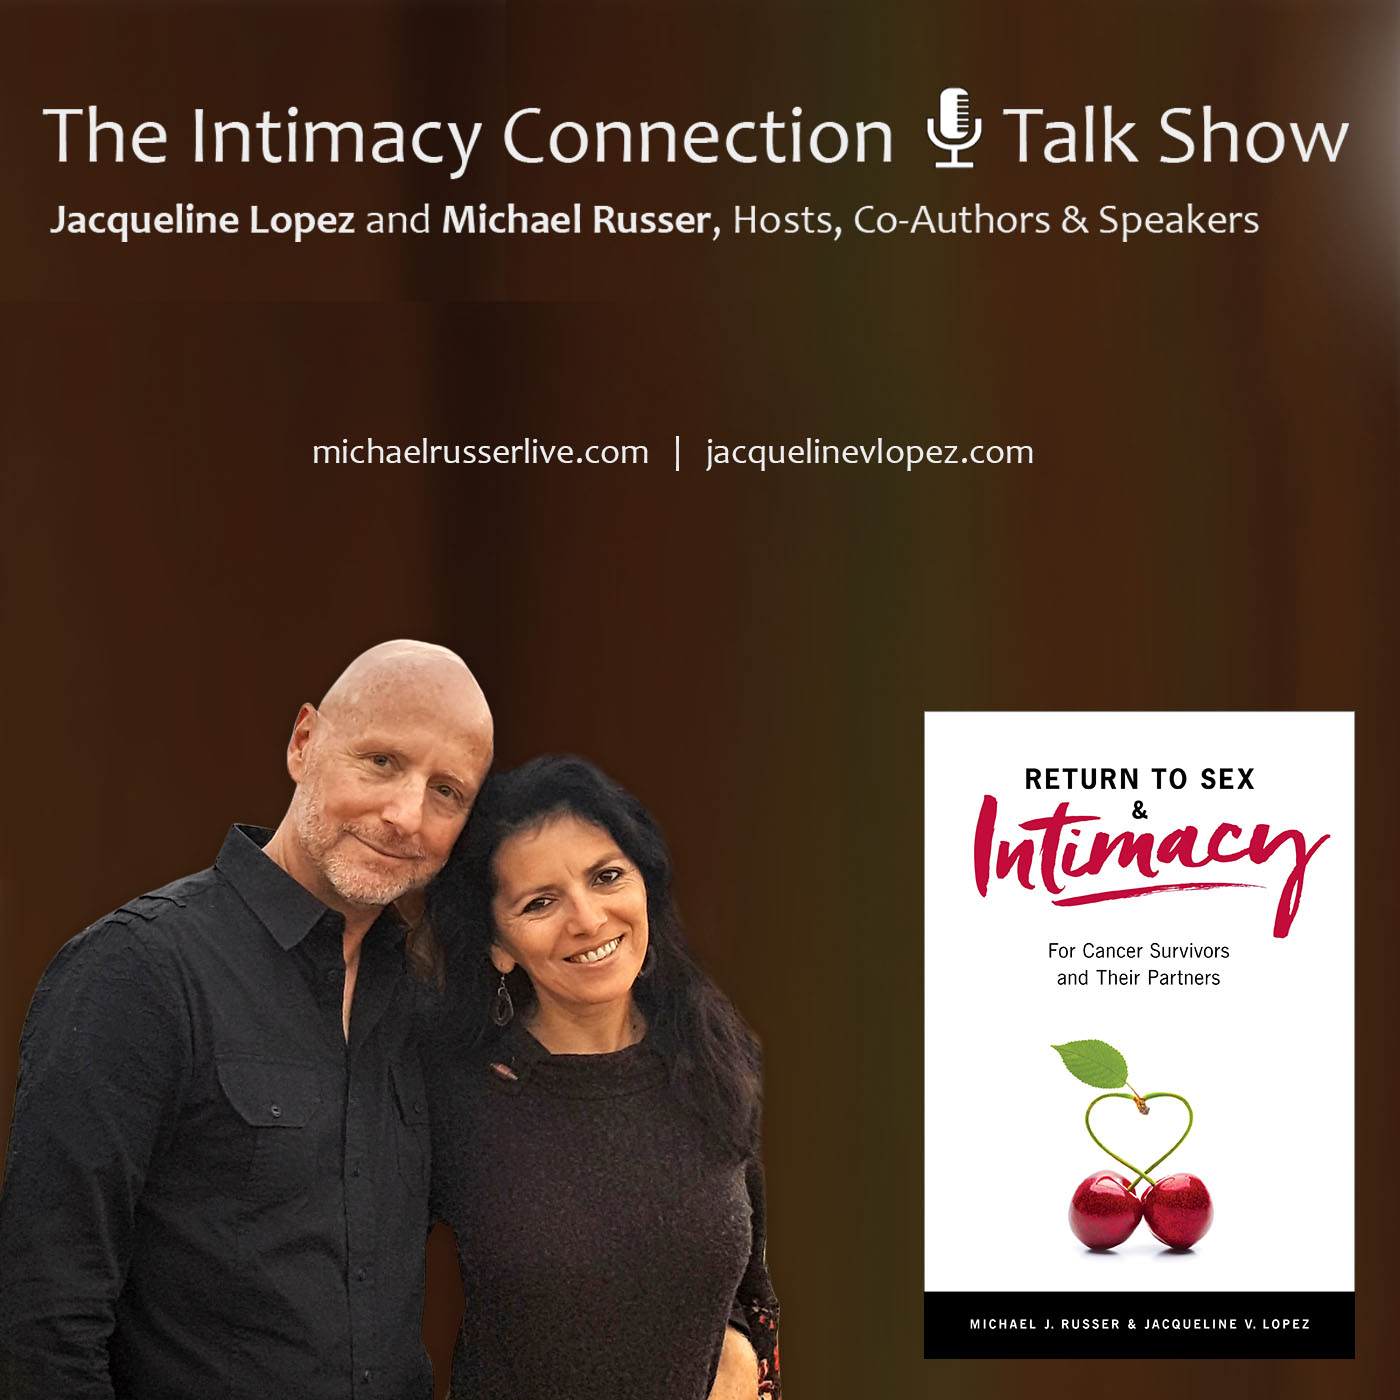 The Intimacy Connection Talk Show